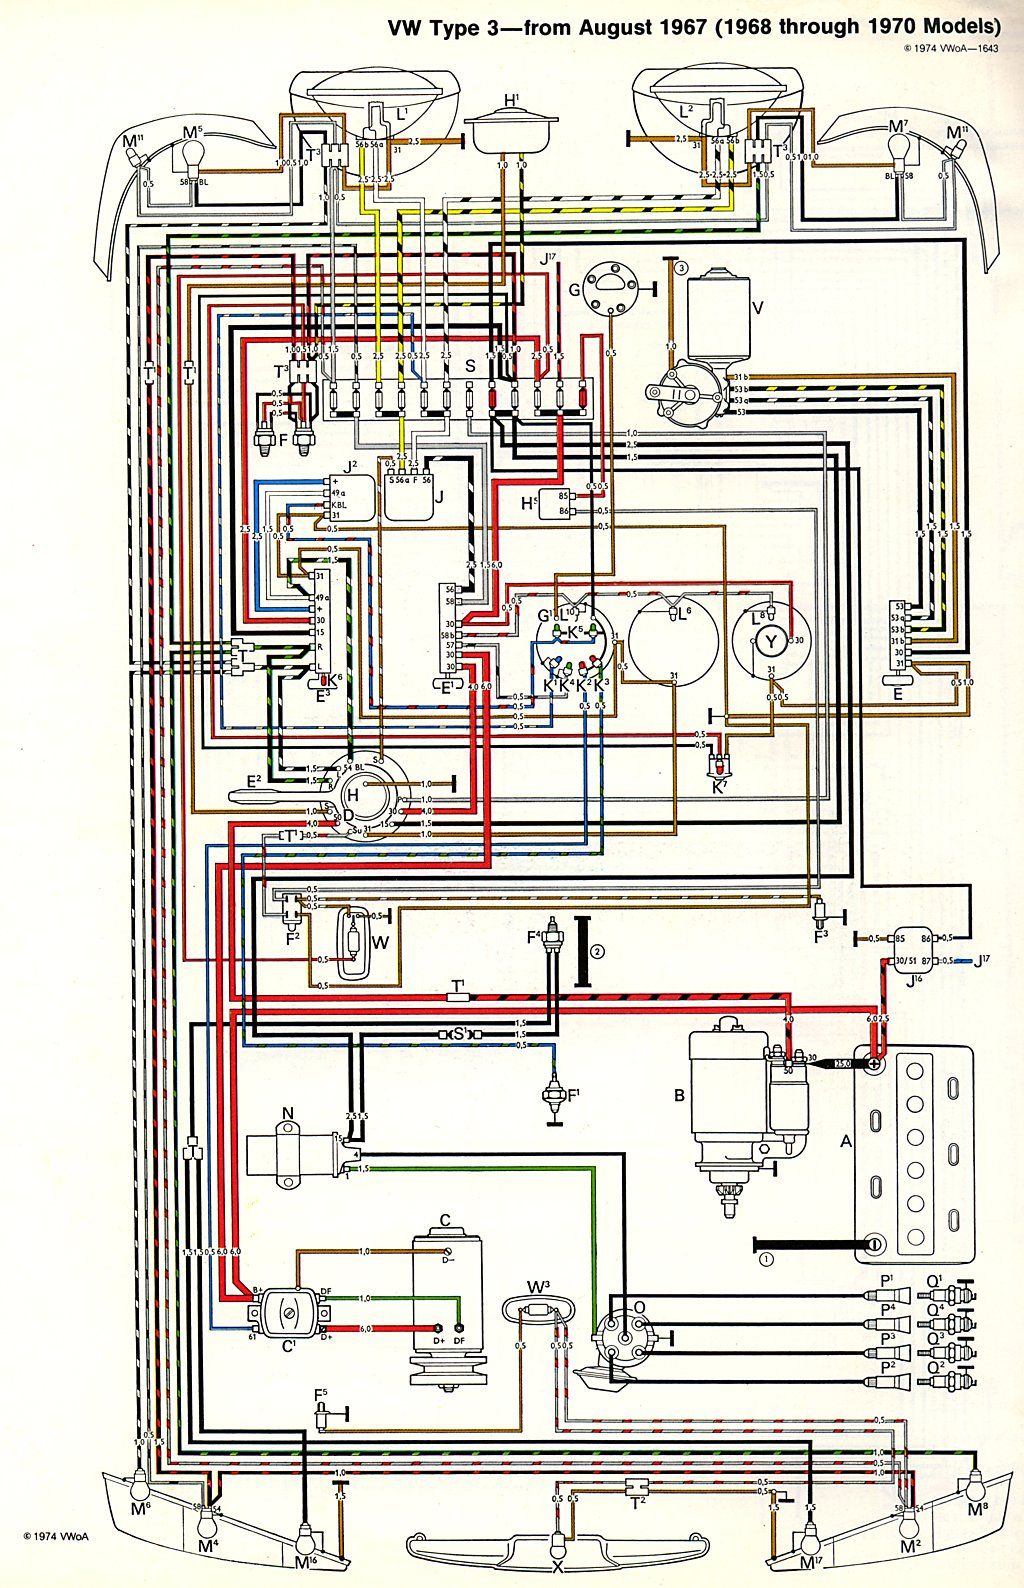 Vw Squareback Fuse Box Wiring Diagram Schemes 2003 Volkswagen Jetta Thesamba Com Type 3 Diagrams Rh 2011 Explorer Layout